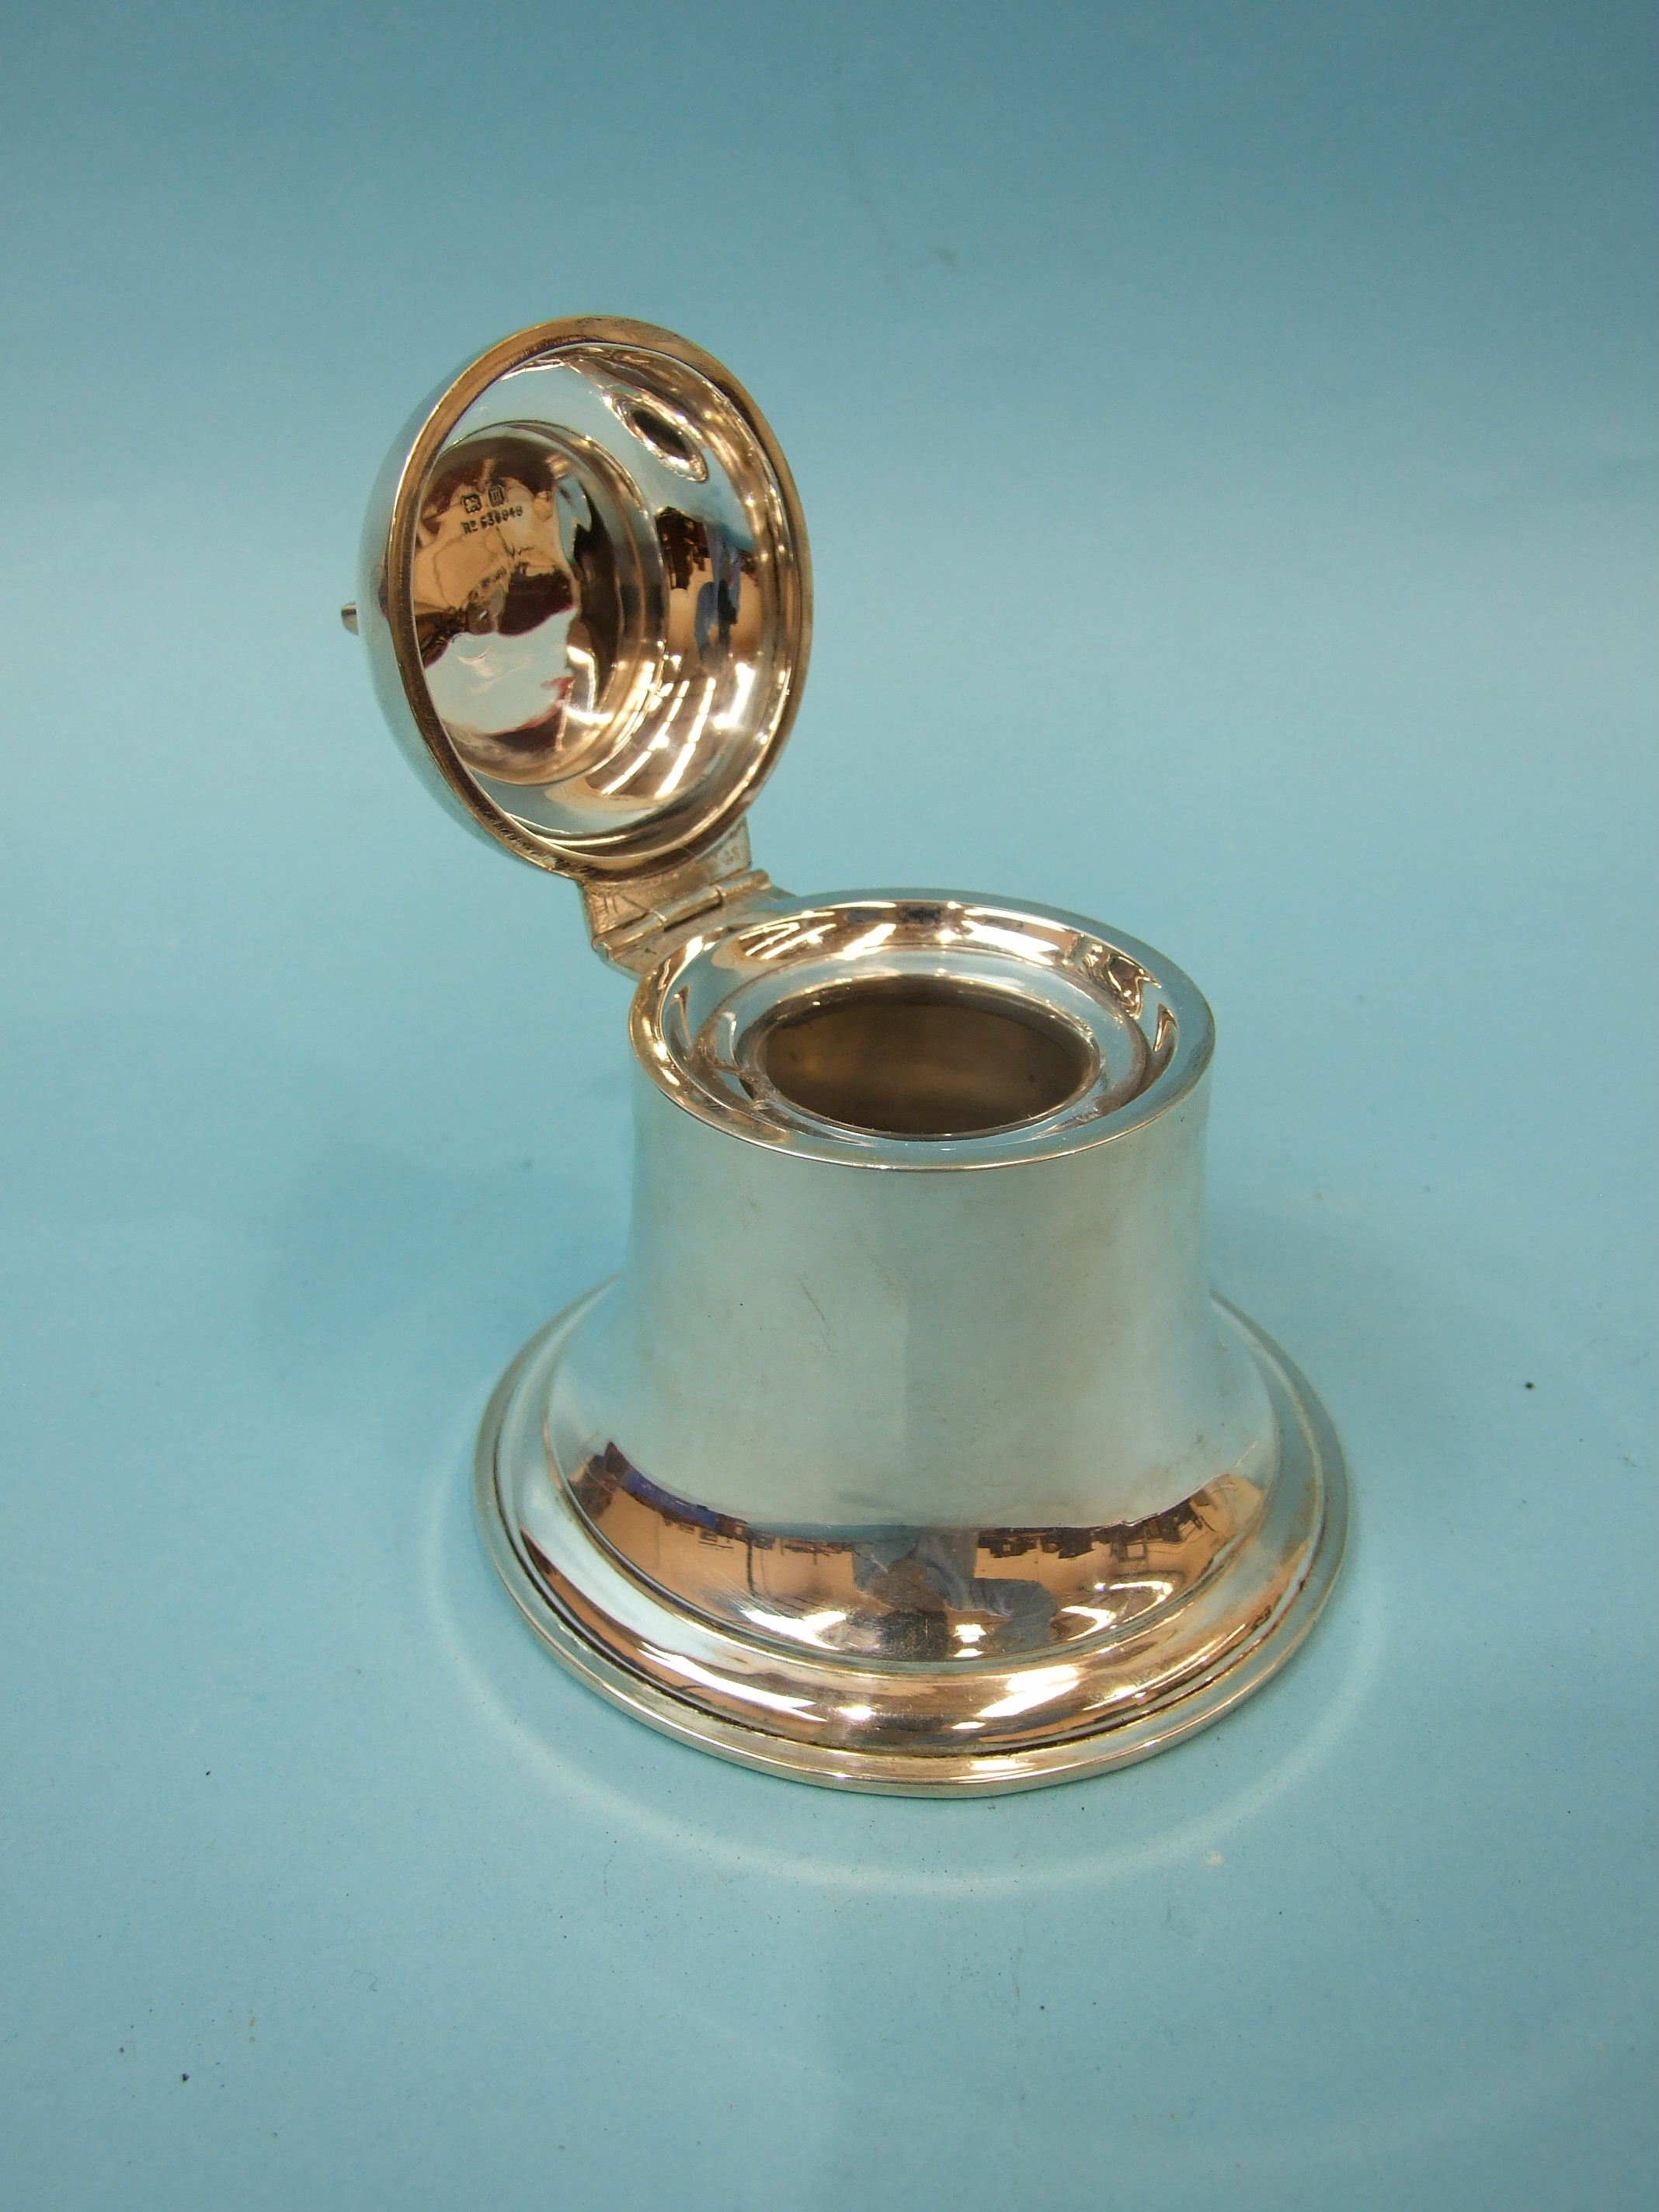 Lot 335 - An early-20th century silver inkwell in the form of a bell, (glass liner chipped, weighted base),